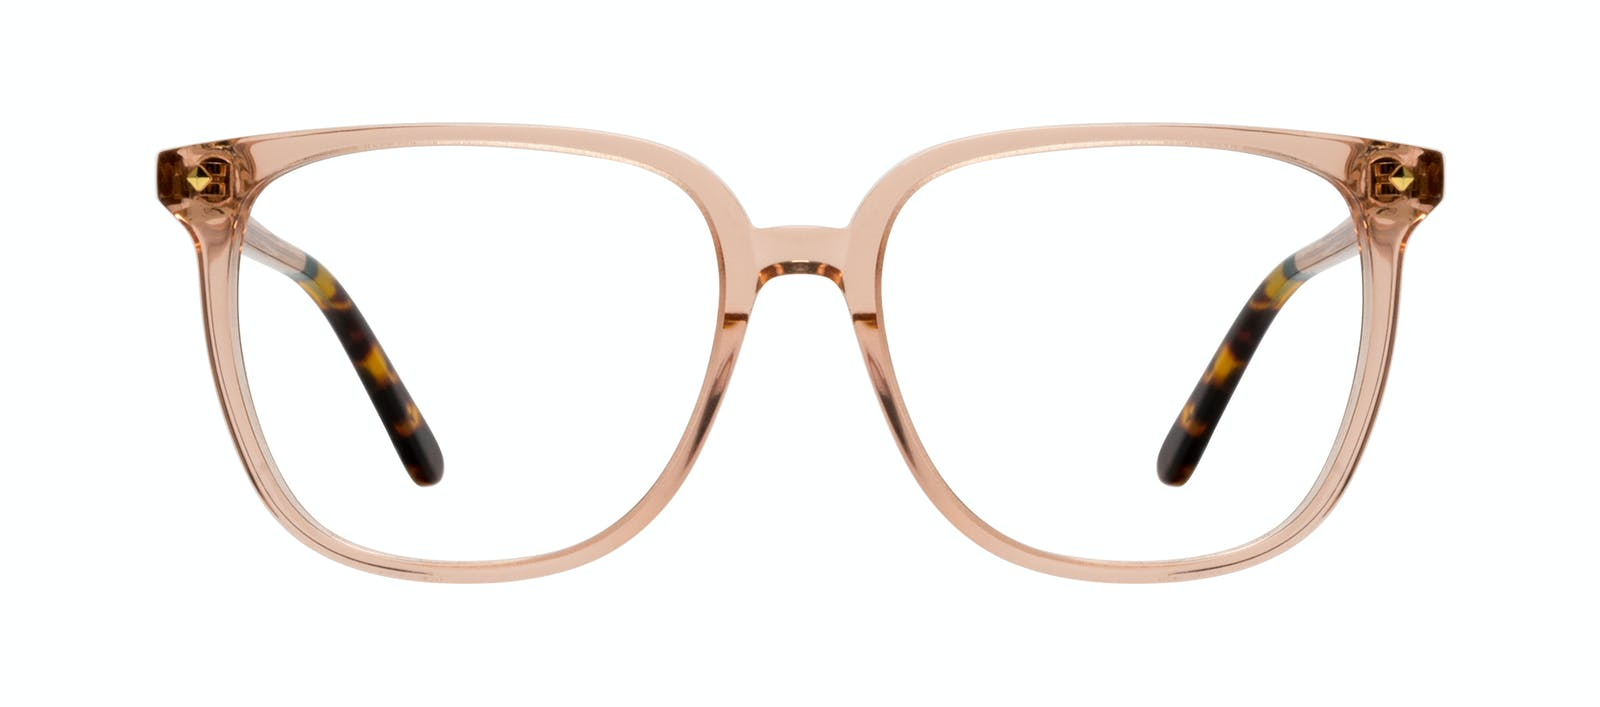 b28302a4c0 Affordable Fashion Glasses Cat Eye Eyeglasses Women Gia Peach Front